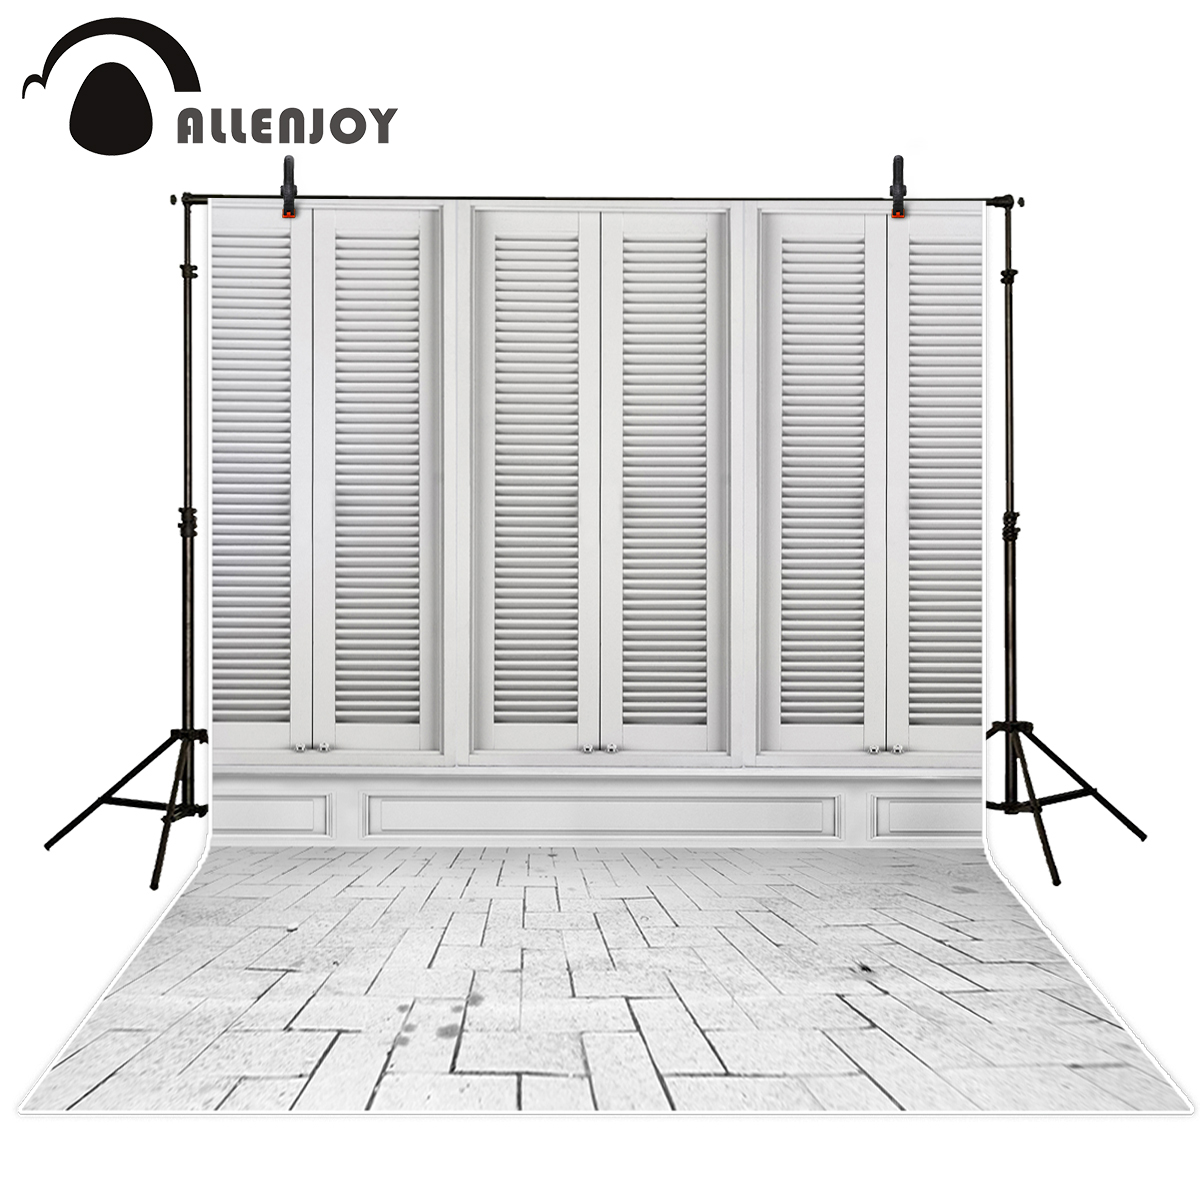 Allenjoy Photographic background White window Brick shutter Personal customization vinyl photography backdrops excluding stand